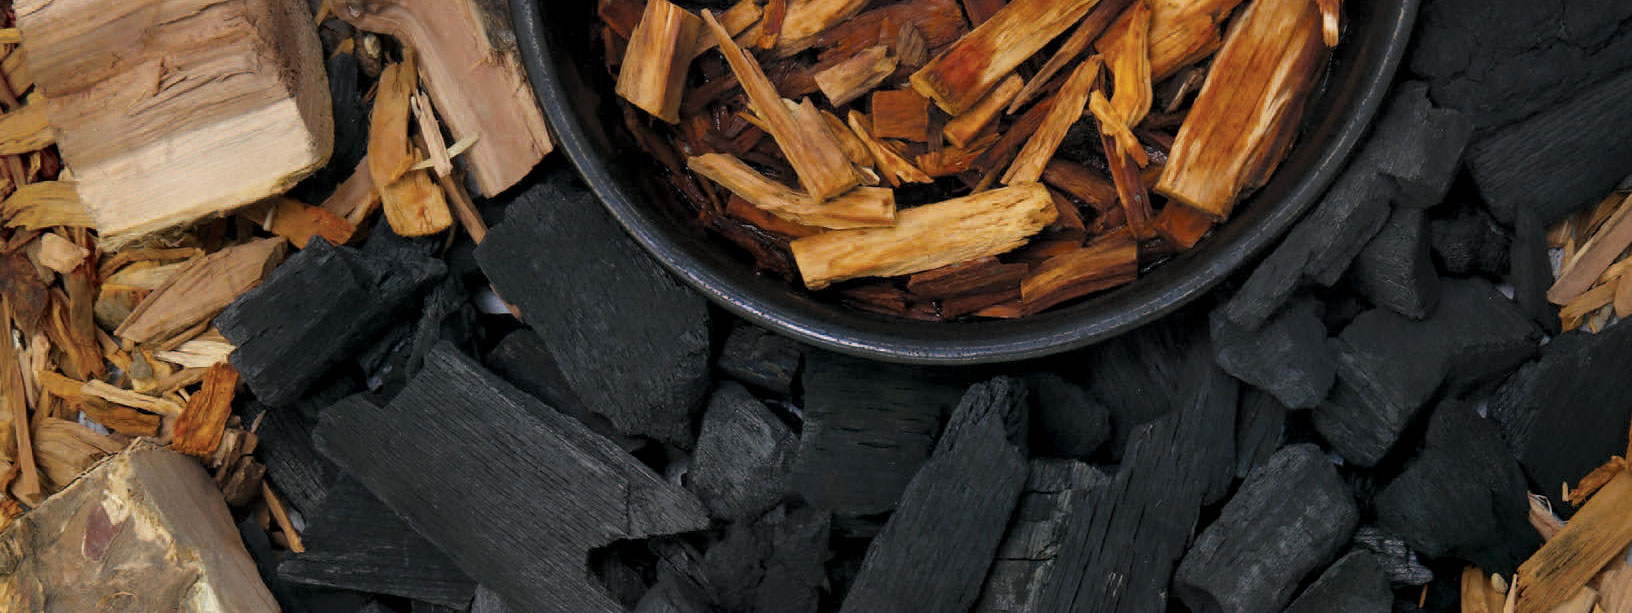 Barbecue Charcoal and Wood Chips